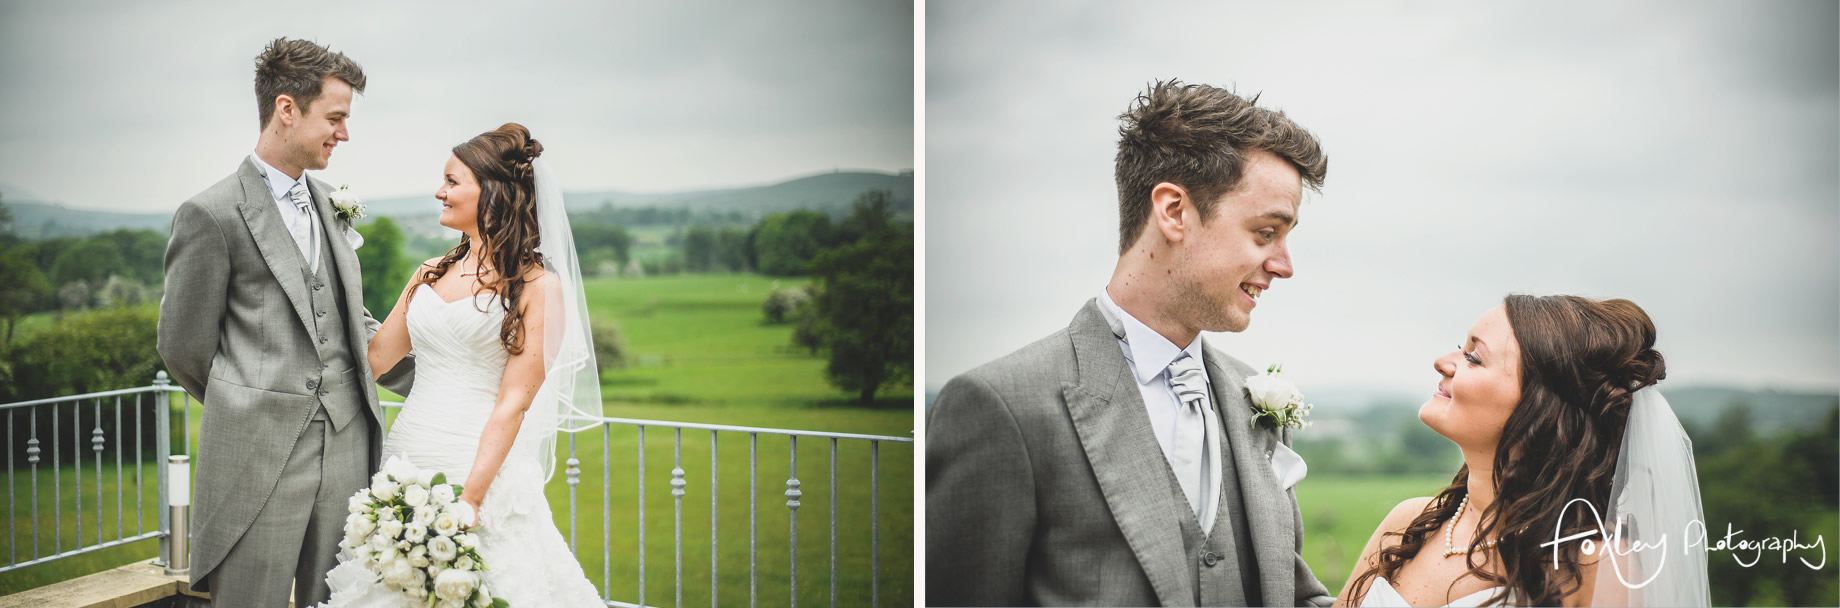 Sarah-and-Tony-Wedding-Mitton-Hall-035